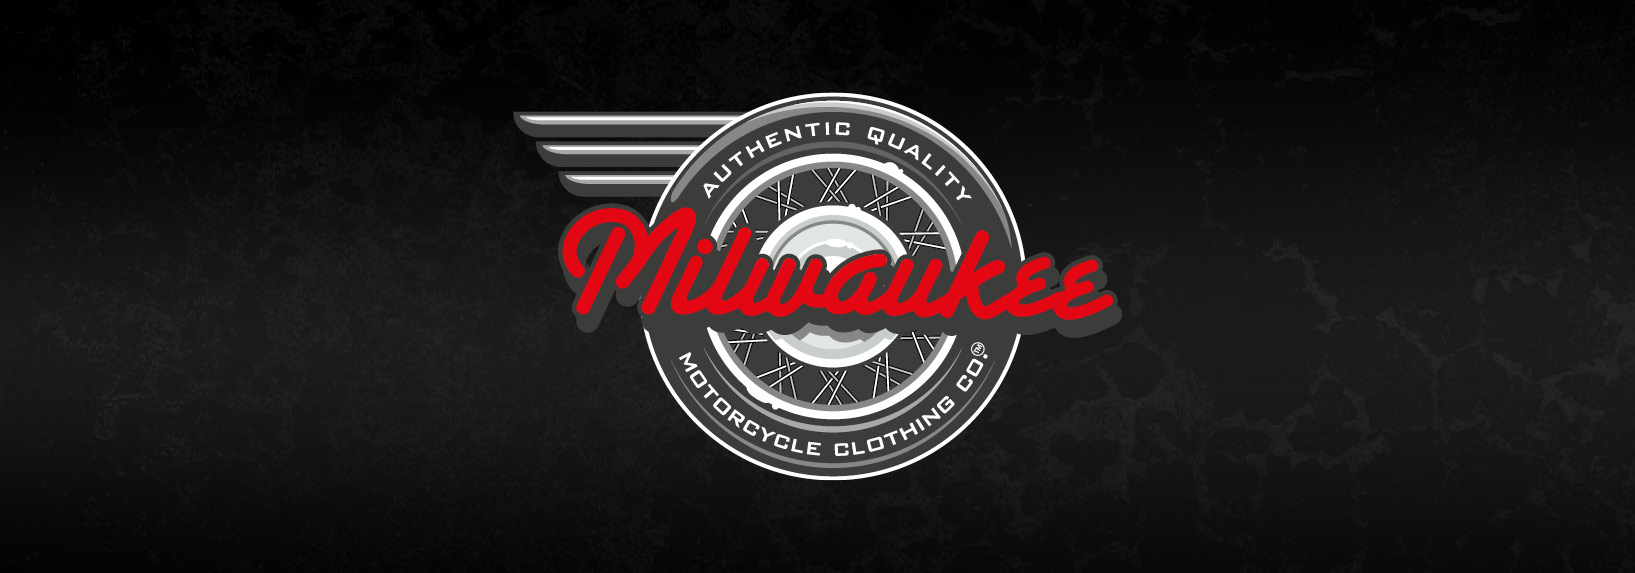 Milwaukee Motorcycle Clothing Company Footwear